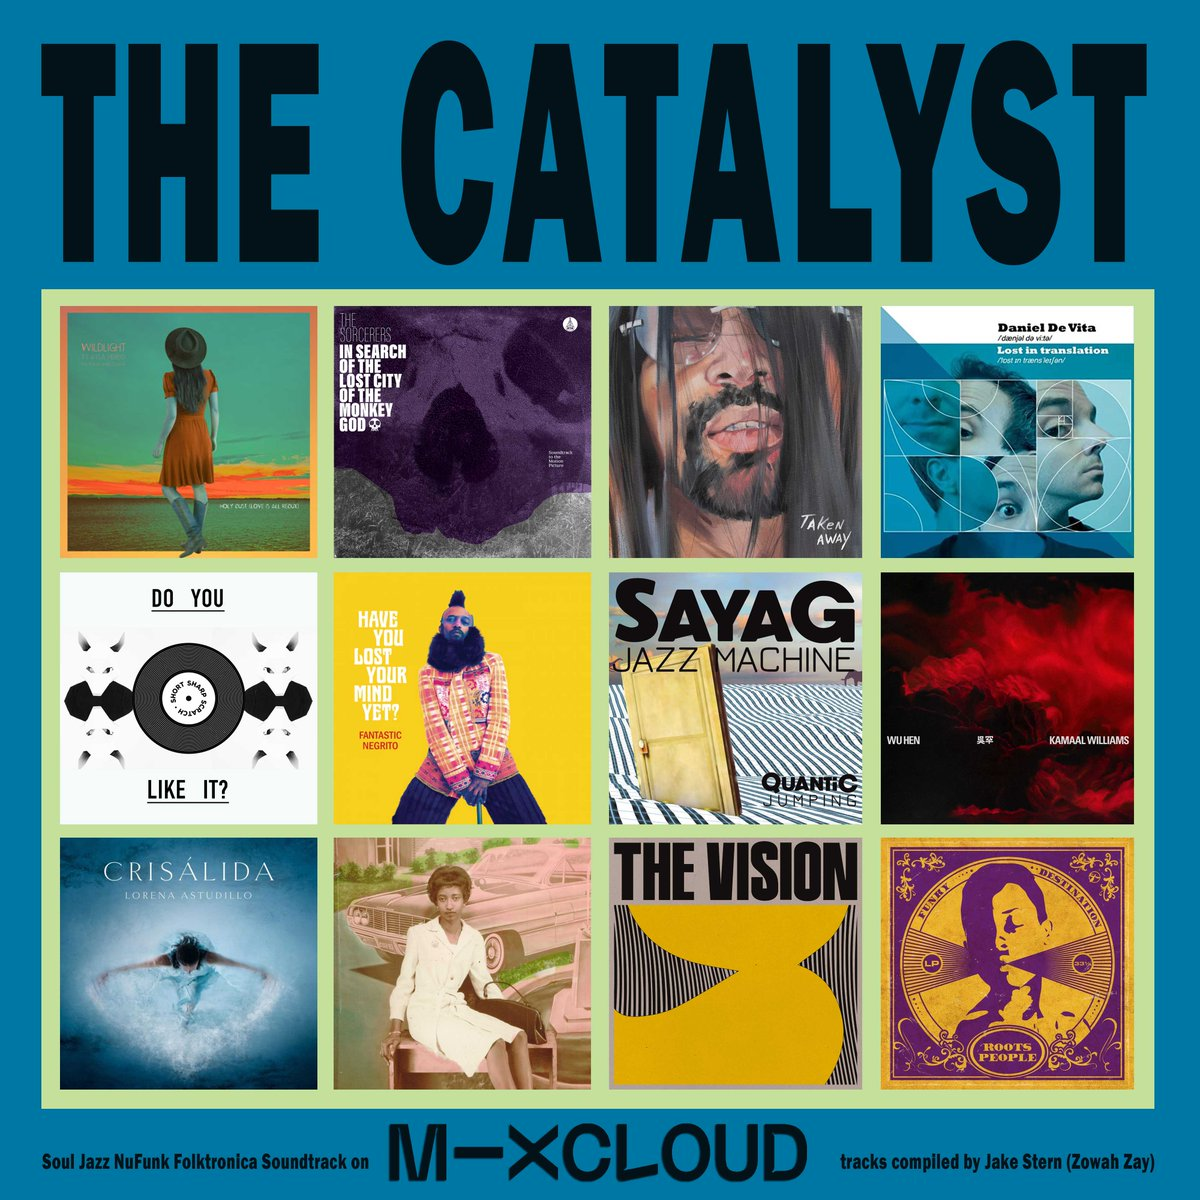 THE CATALYST #nowplaying on #Mixcloud https://t.co/gR5rWET2Eg  #NuFunk #Soul #Jazz #Disco #Funky #Soundtrack #RnB #experimental #breakbeat #downtempo #folktronica #funk #indiegroove https://t.co/vbQuQnTaWX